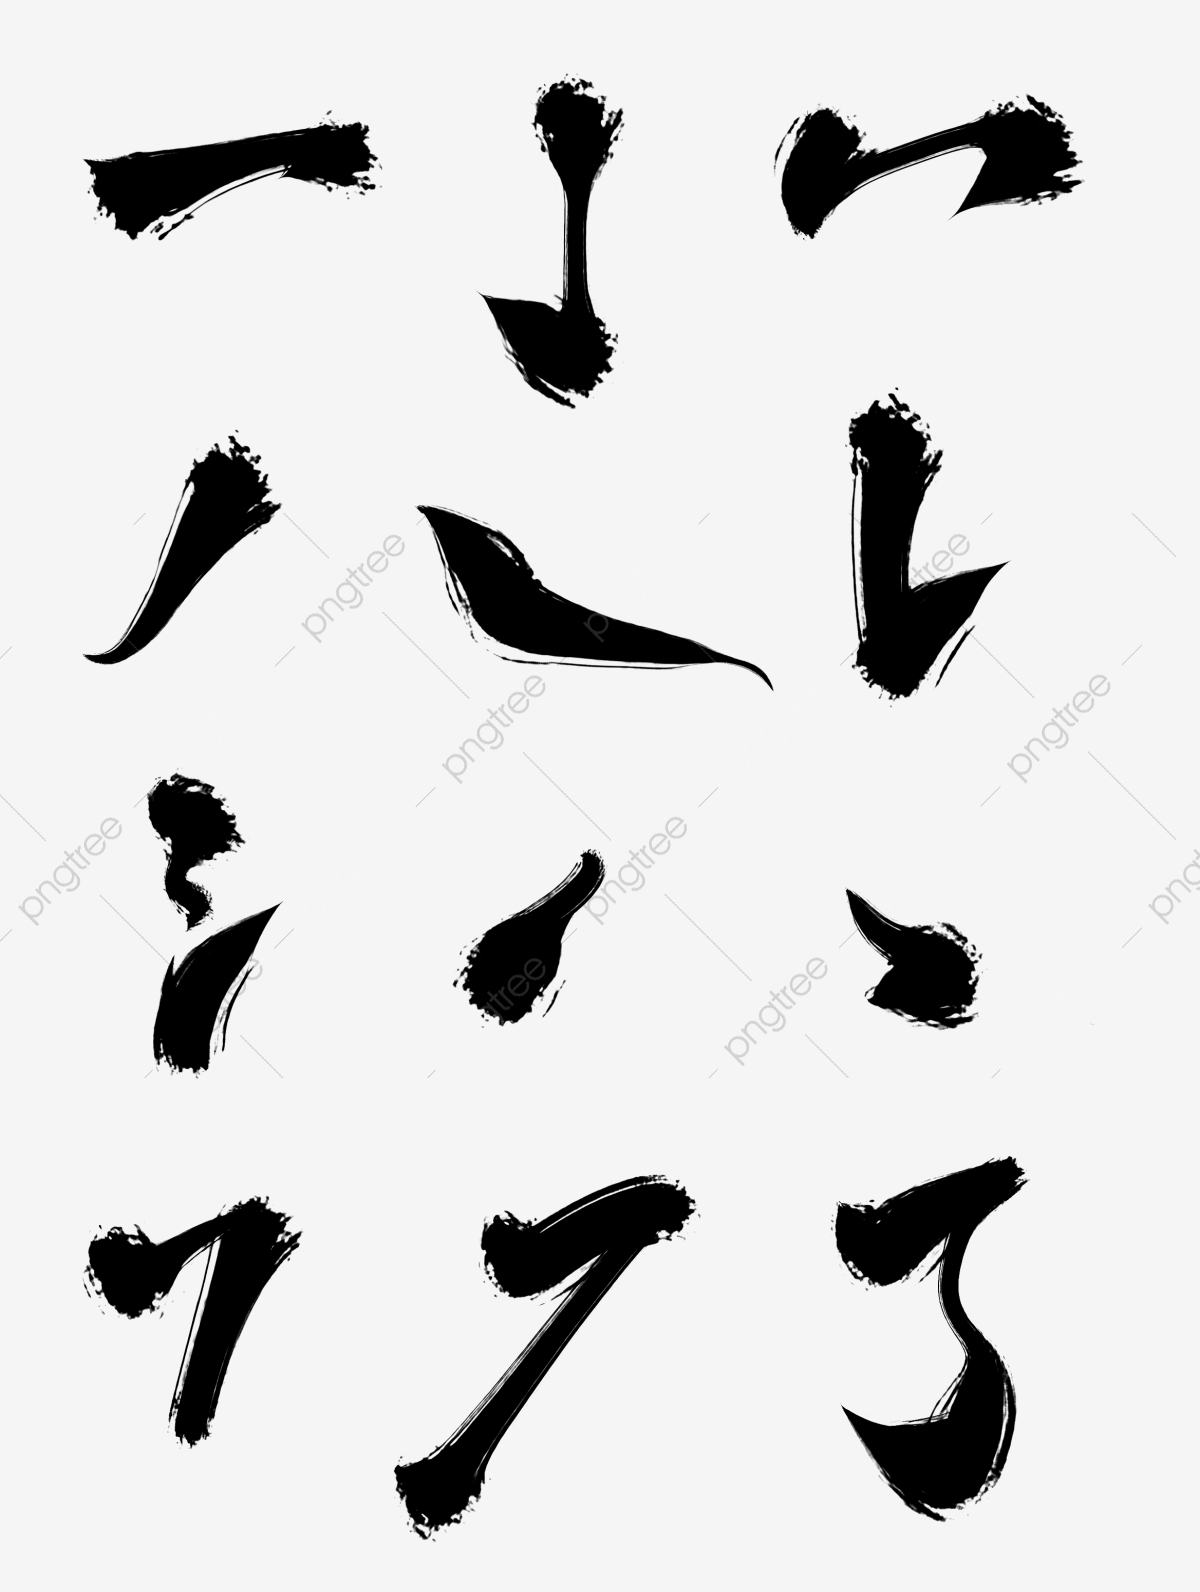 Brush Strokes Calligraphy Chinese Style Black And White Ink